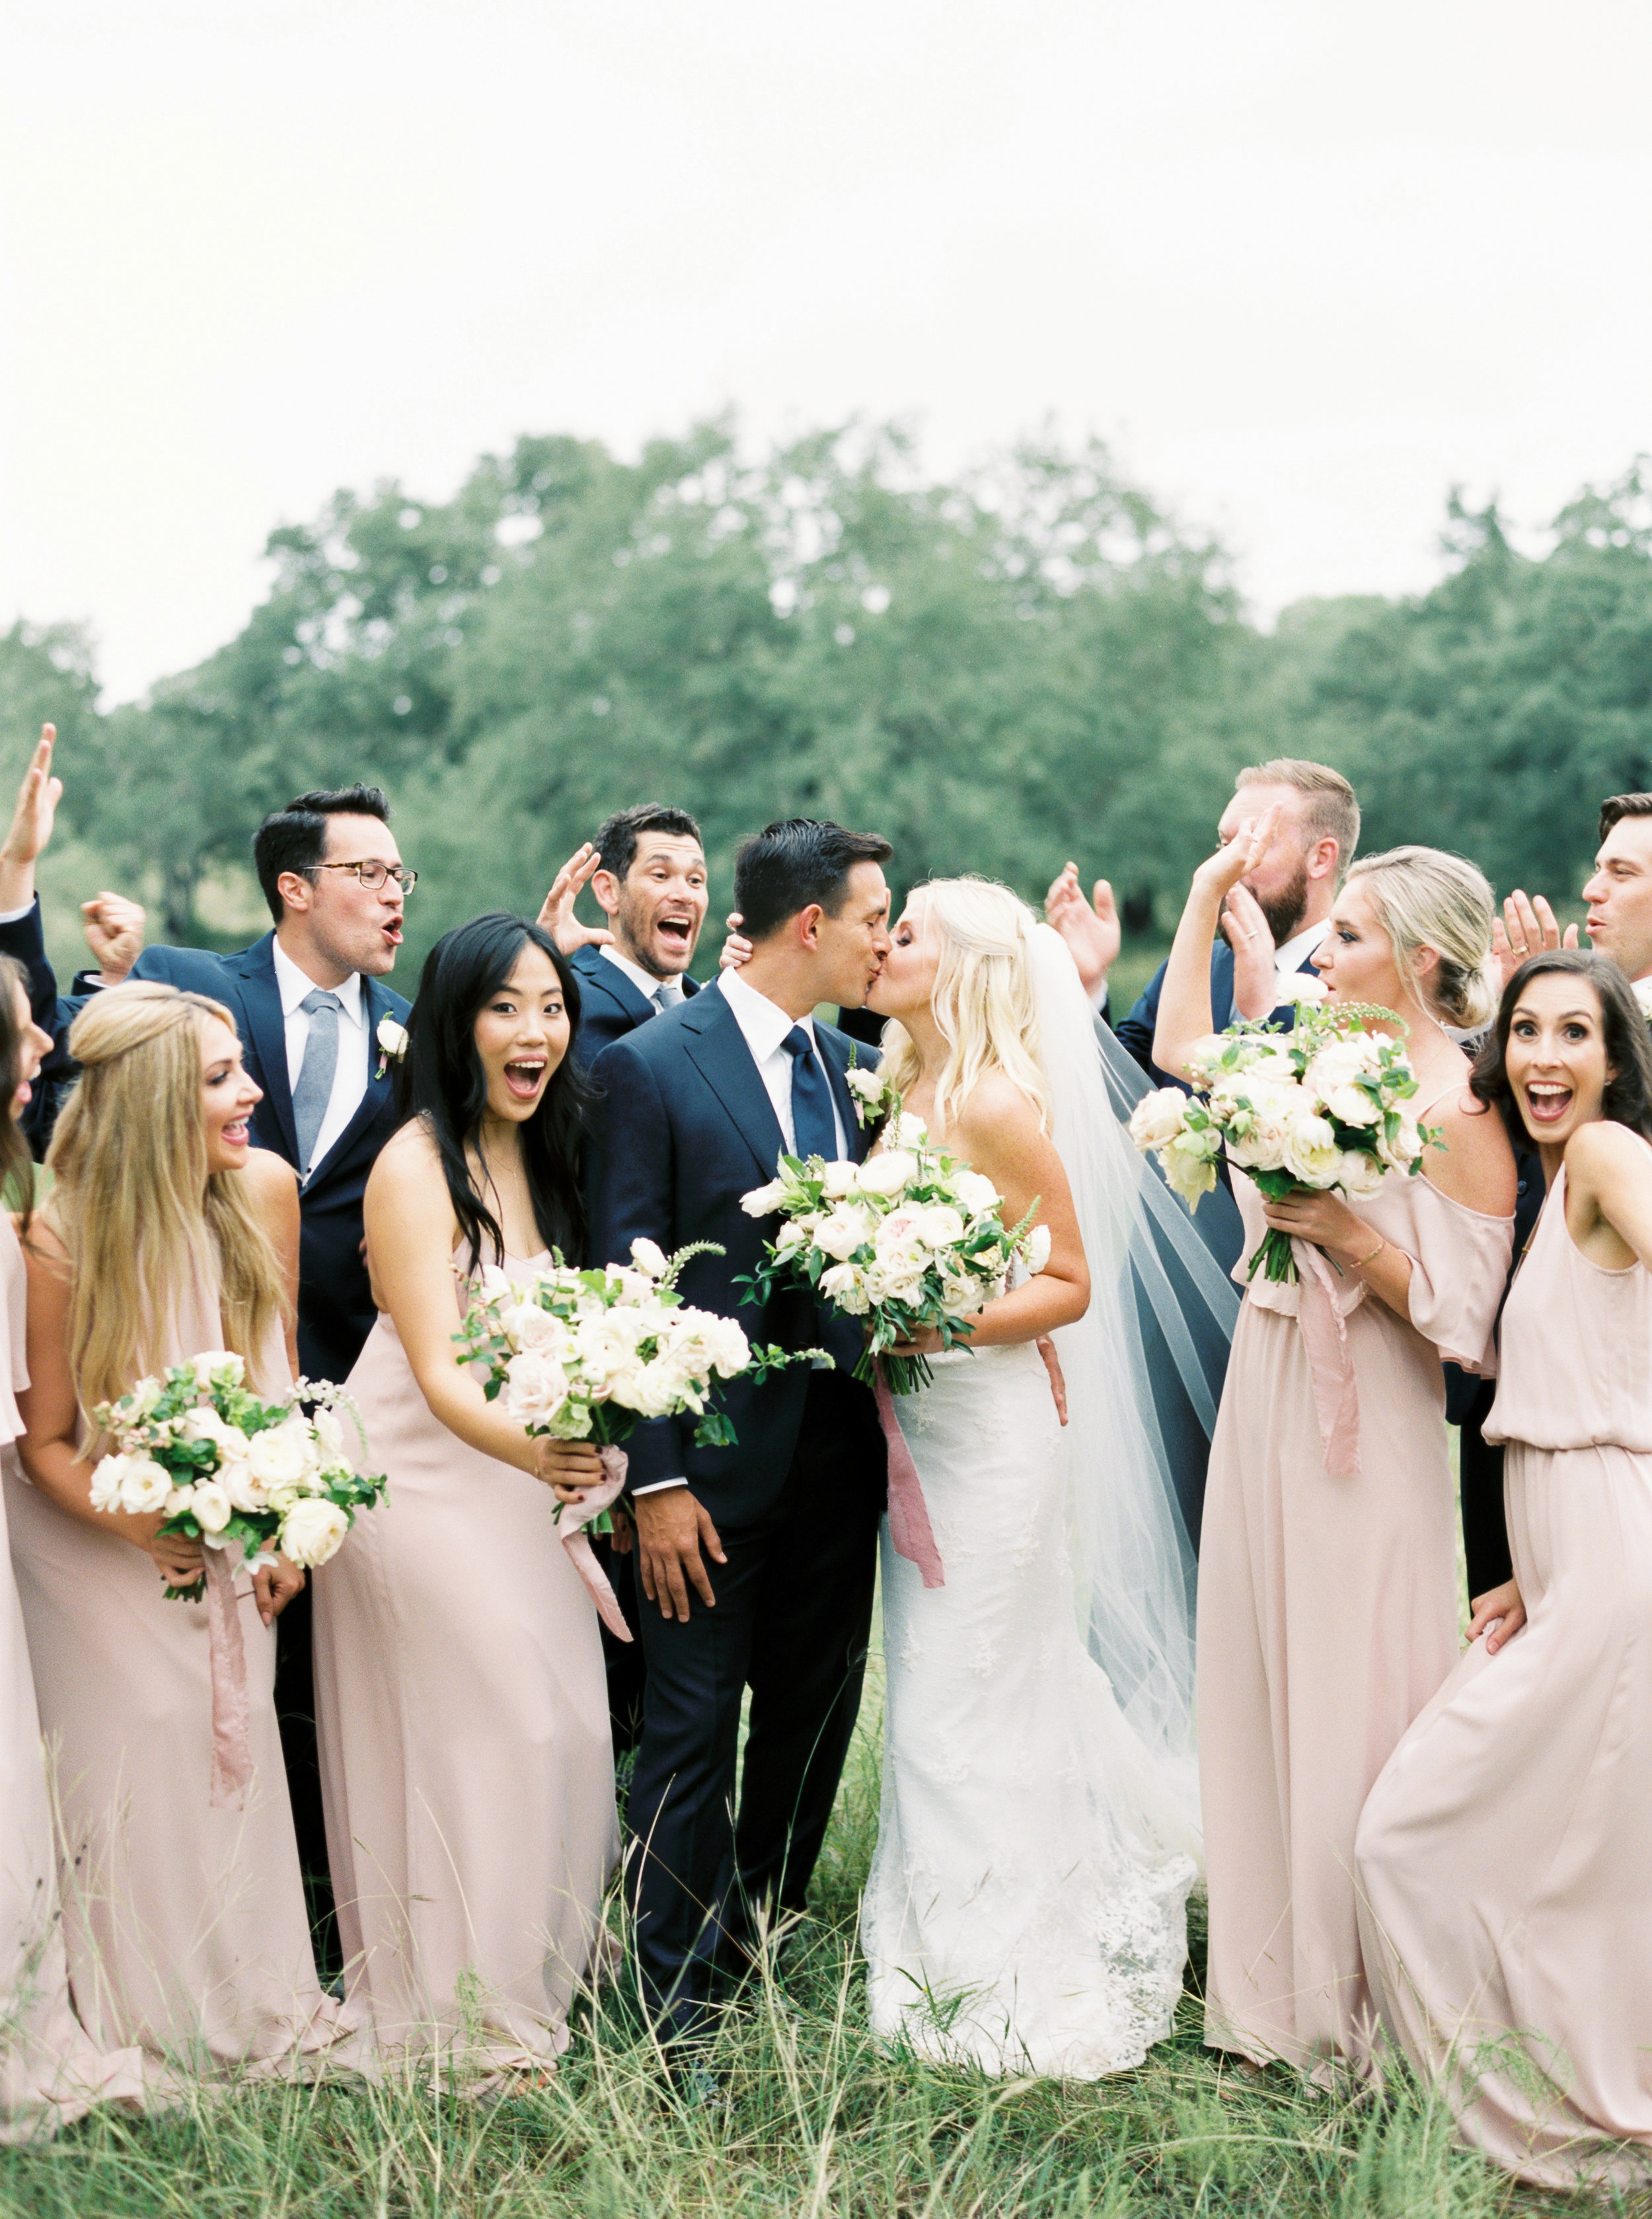 Austin Bride, Groom, Wedding Party with White and Blush Romantic Bouquets